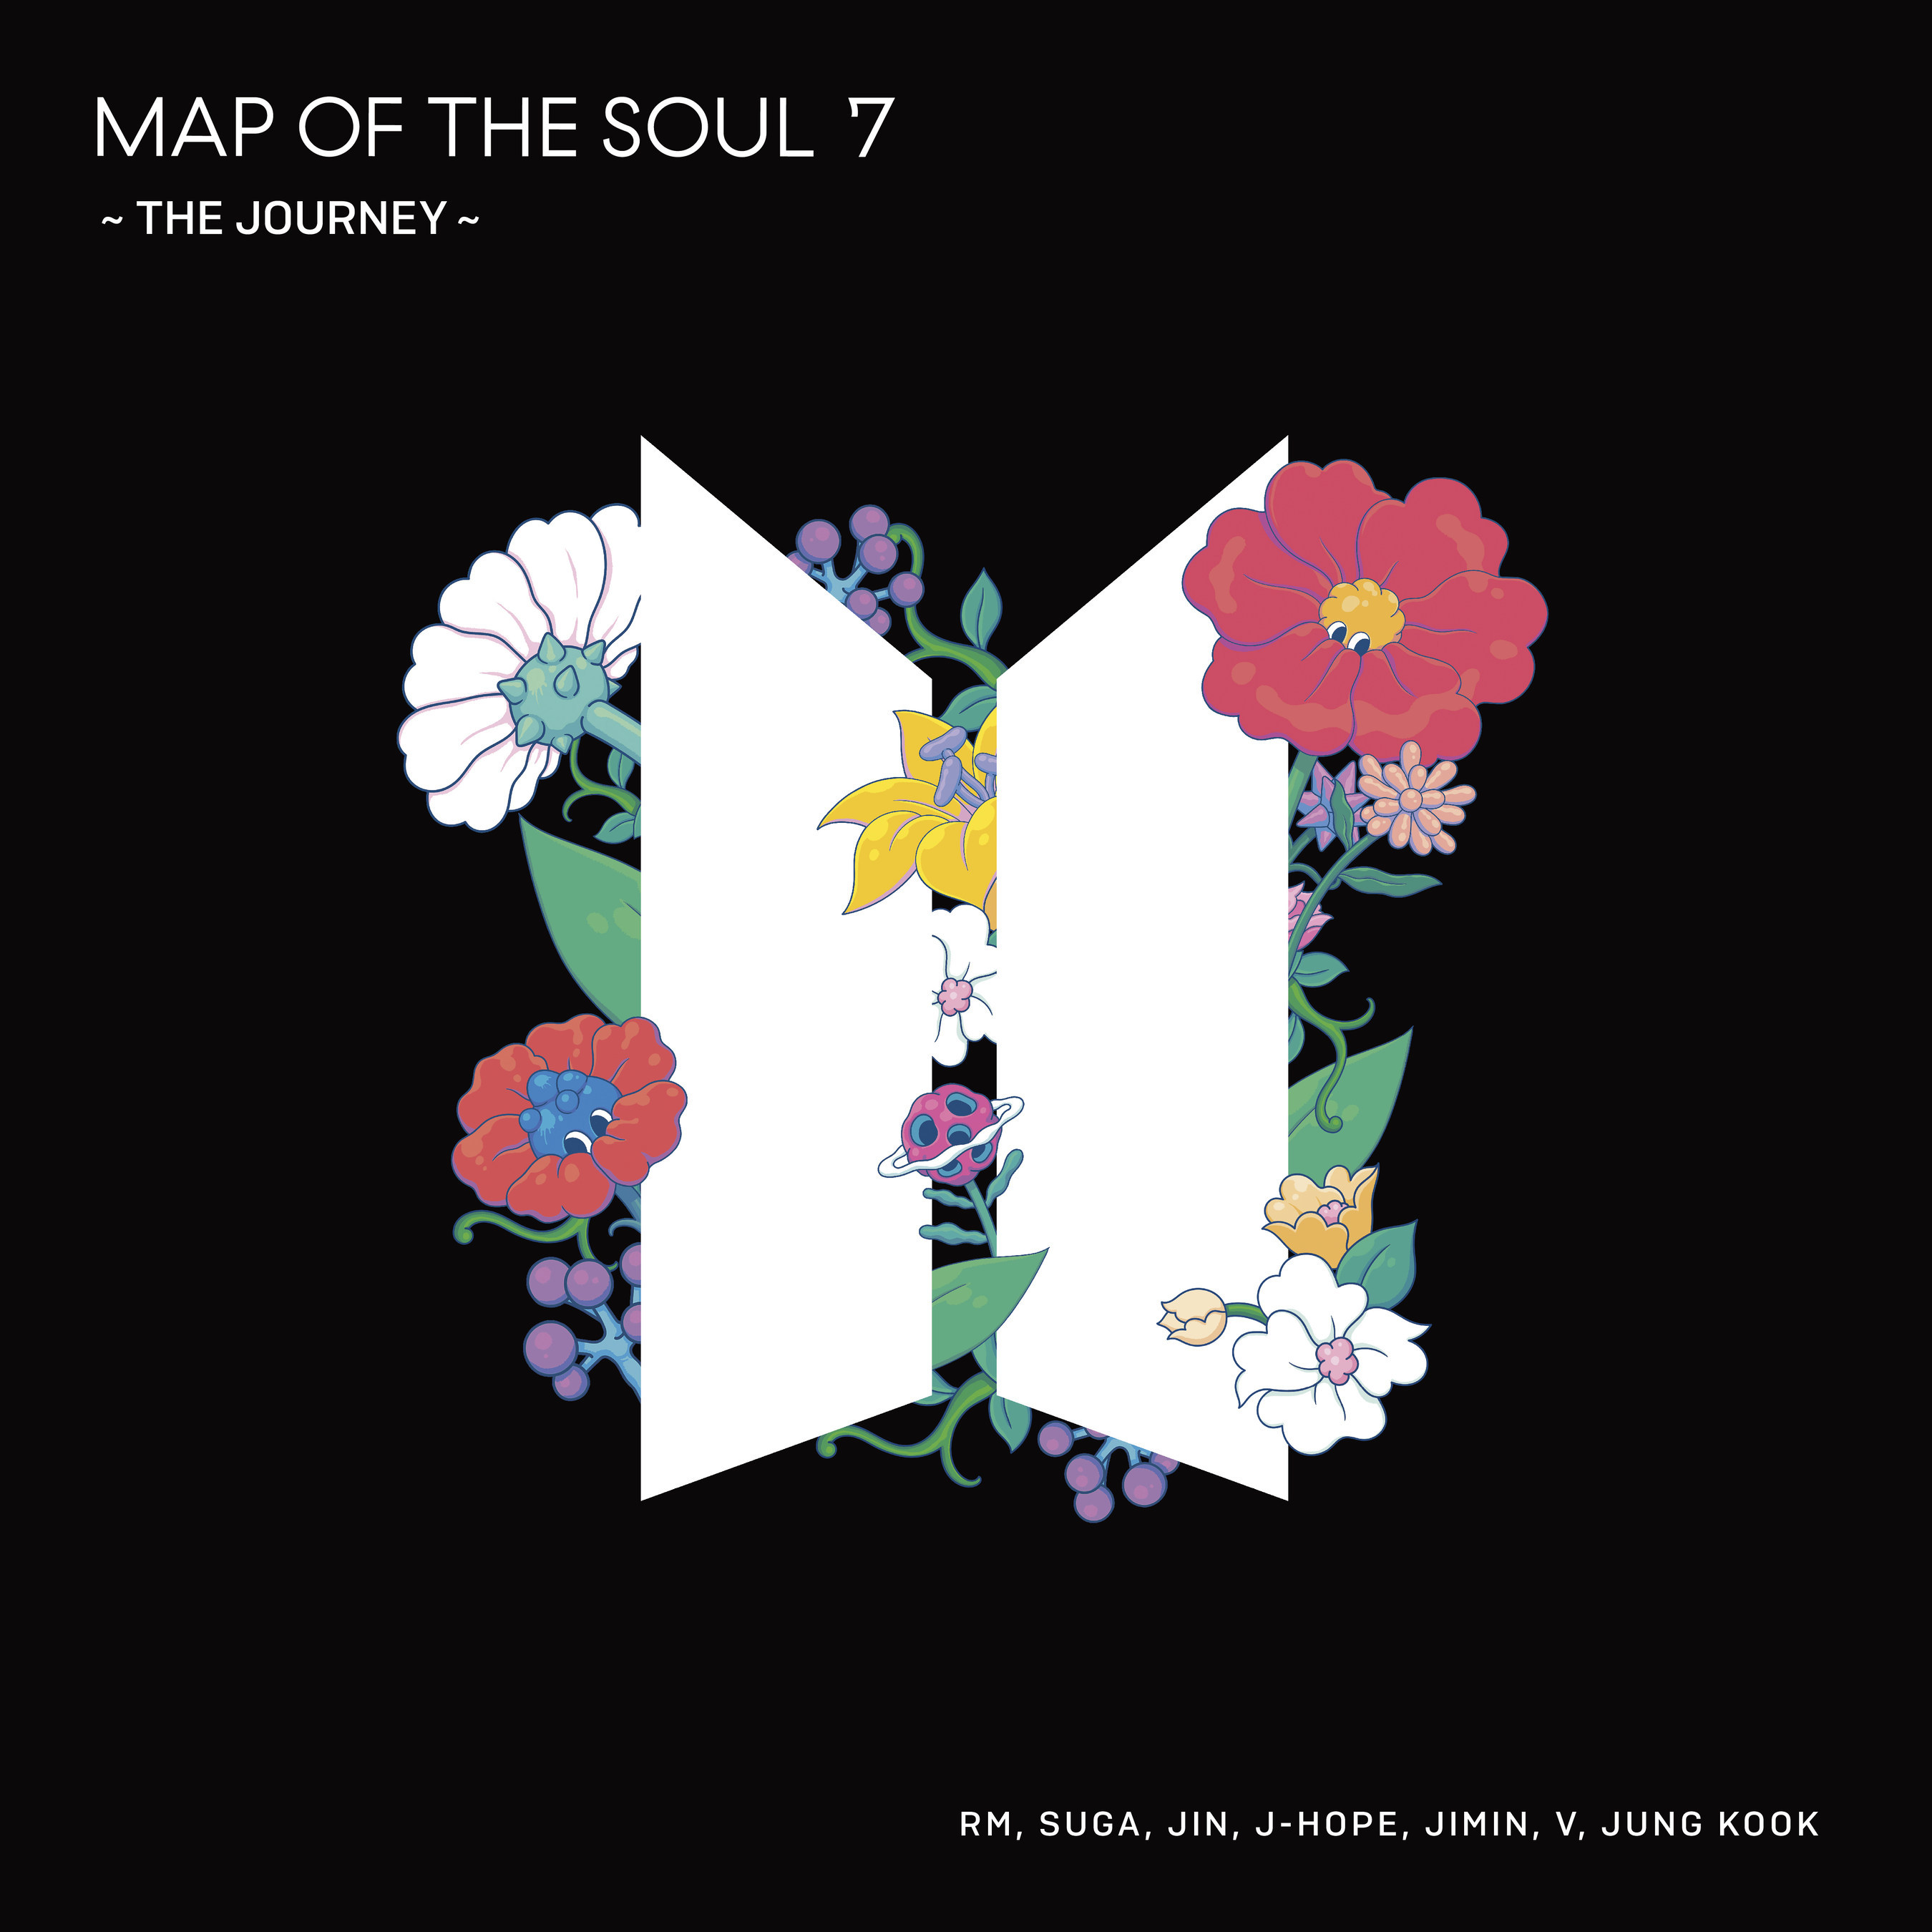 bts map of the soul 7 the journey bts map of the soul 7 the journey